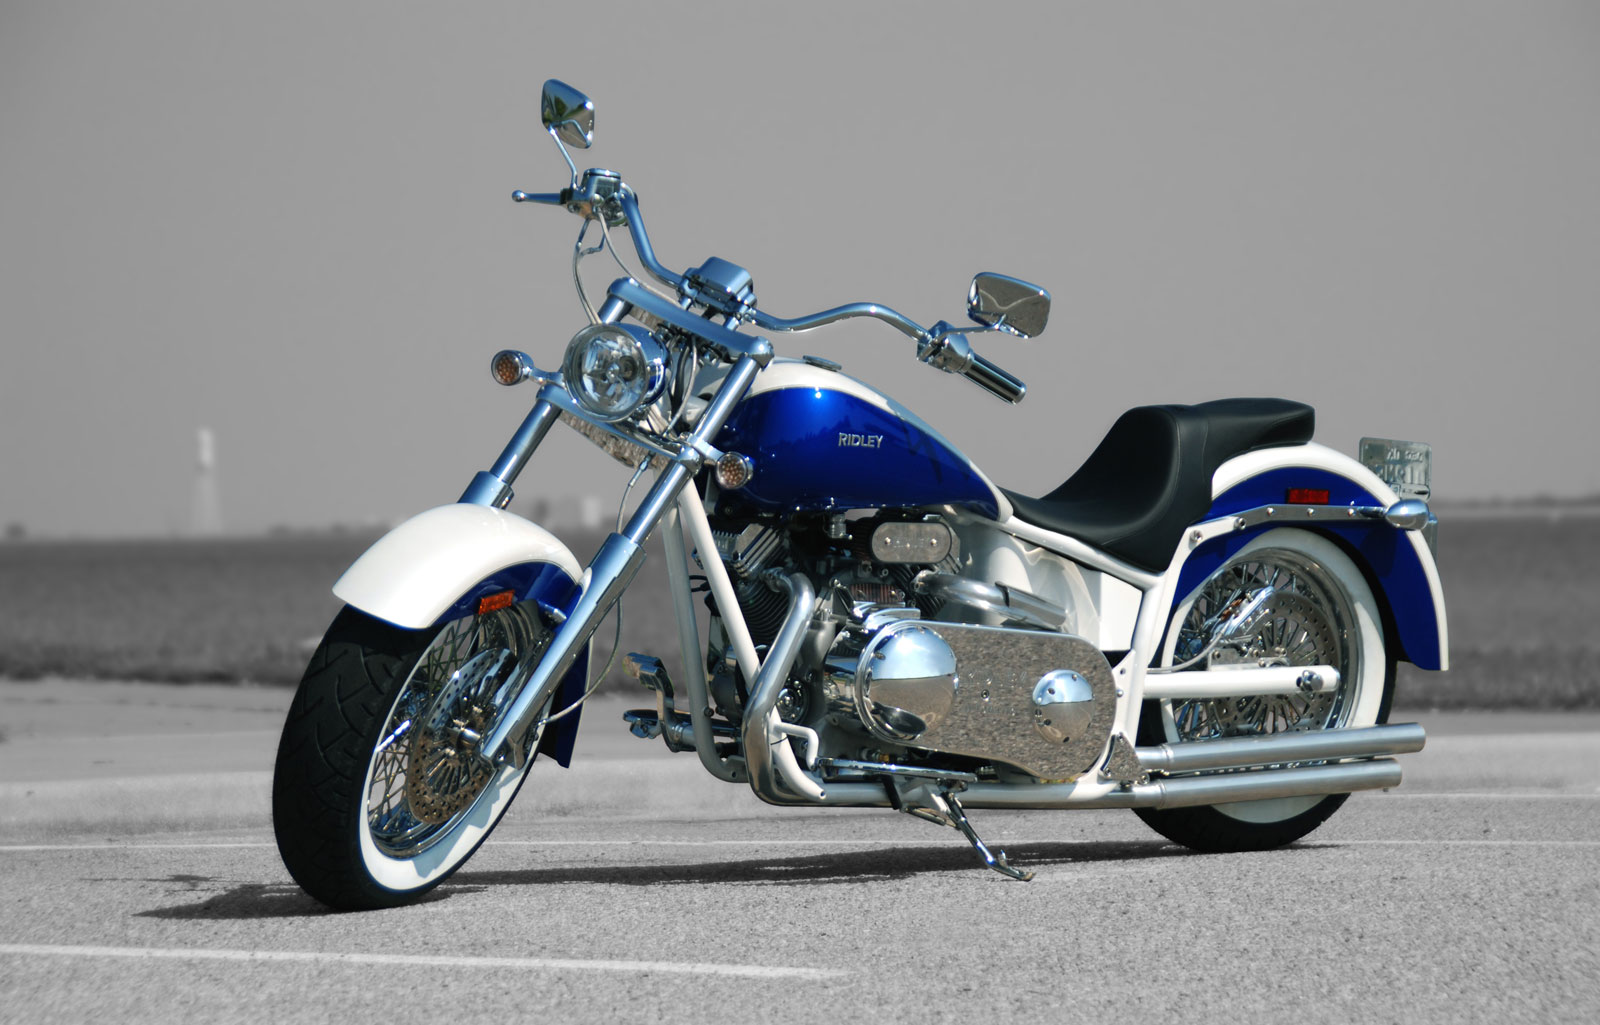 2009 2003 ridley auto glide classic rh totalmotorcycle com